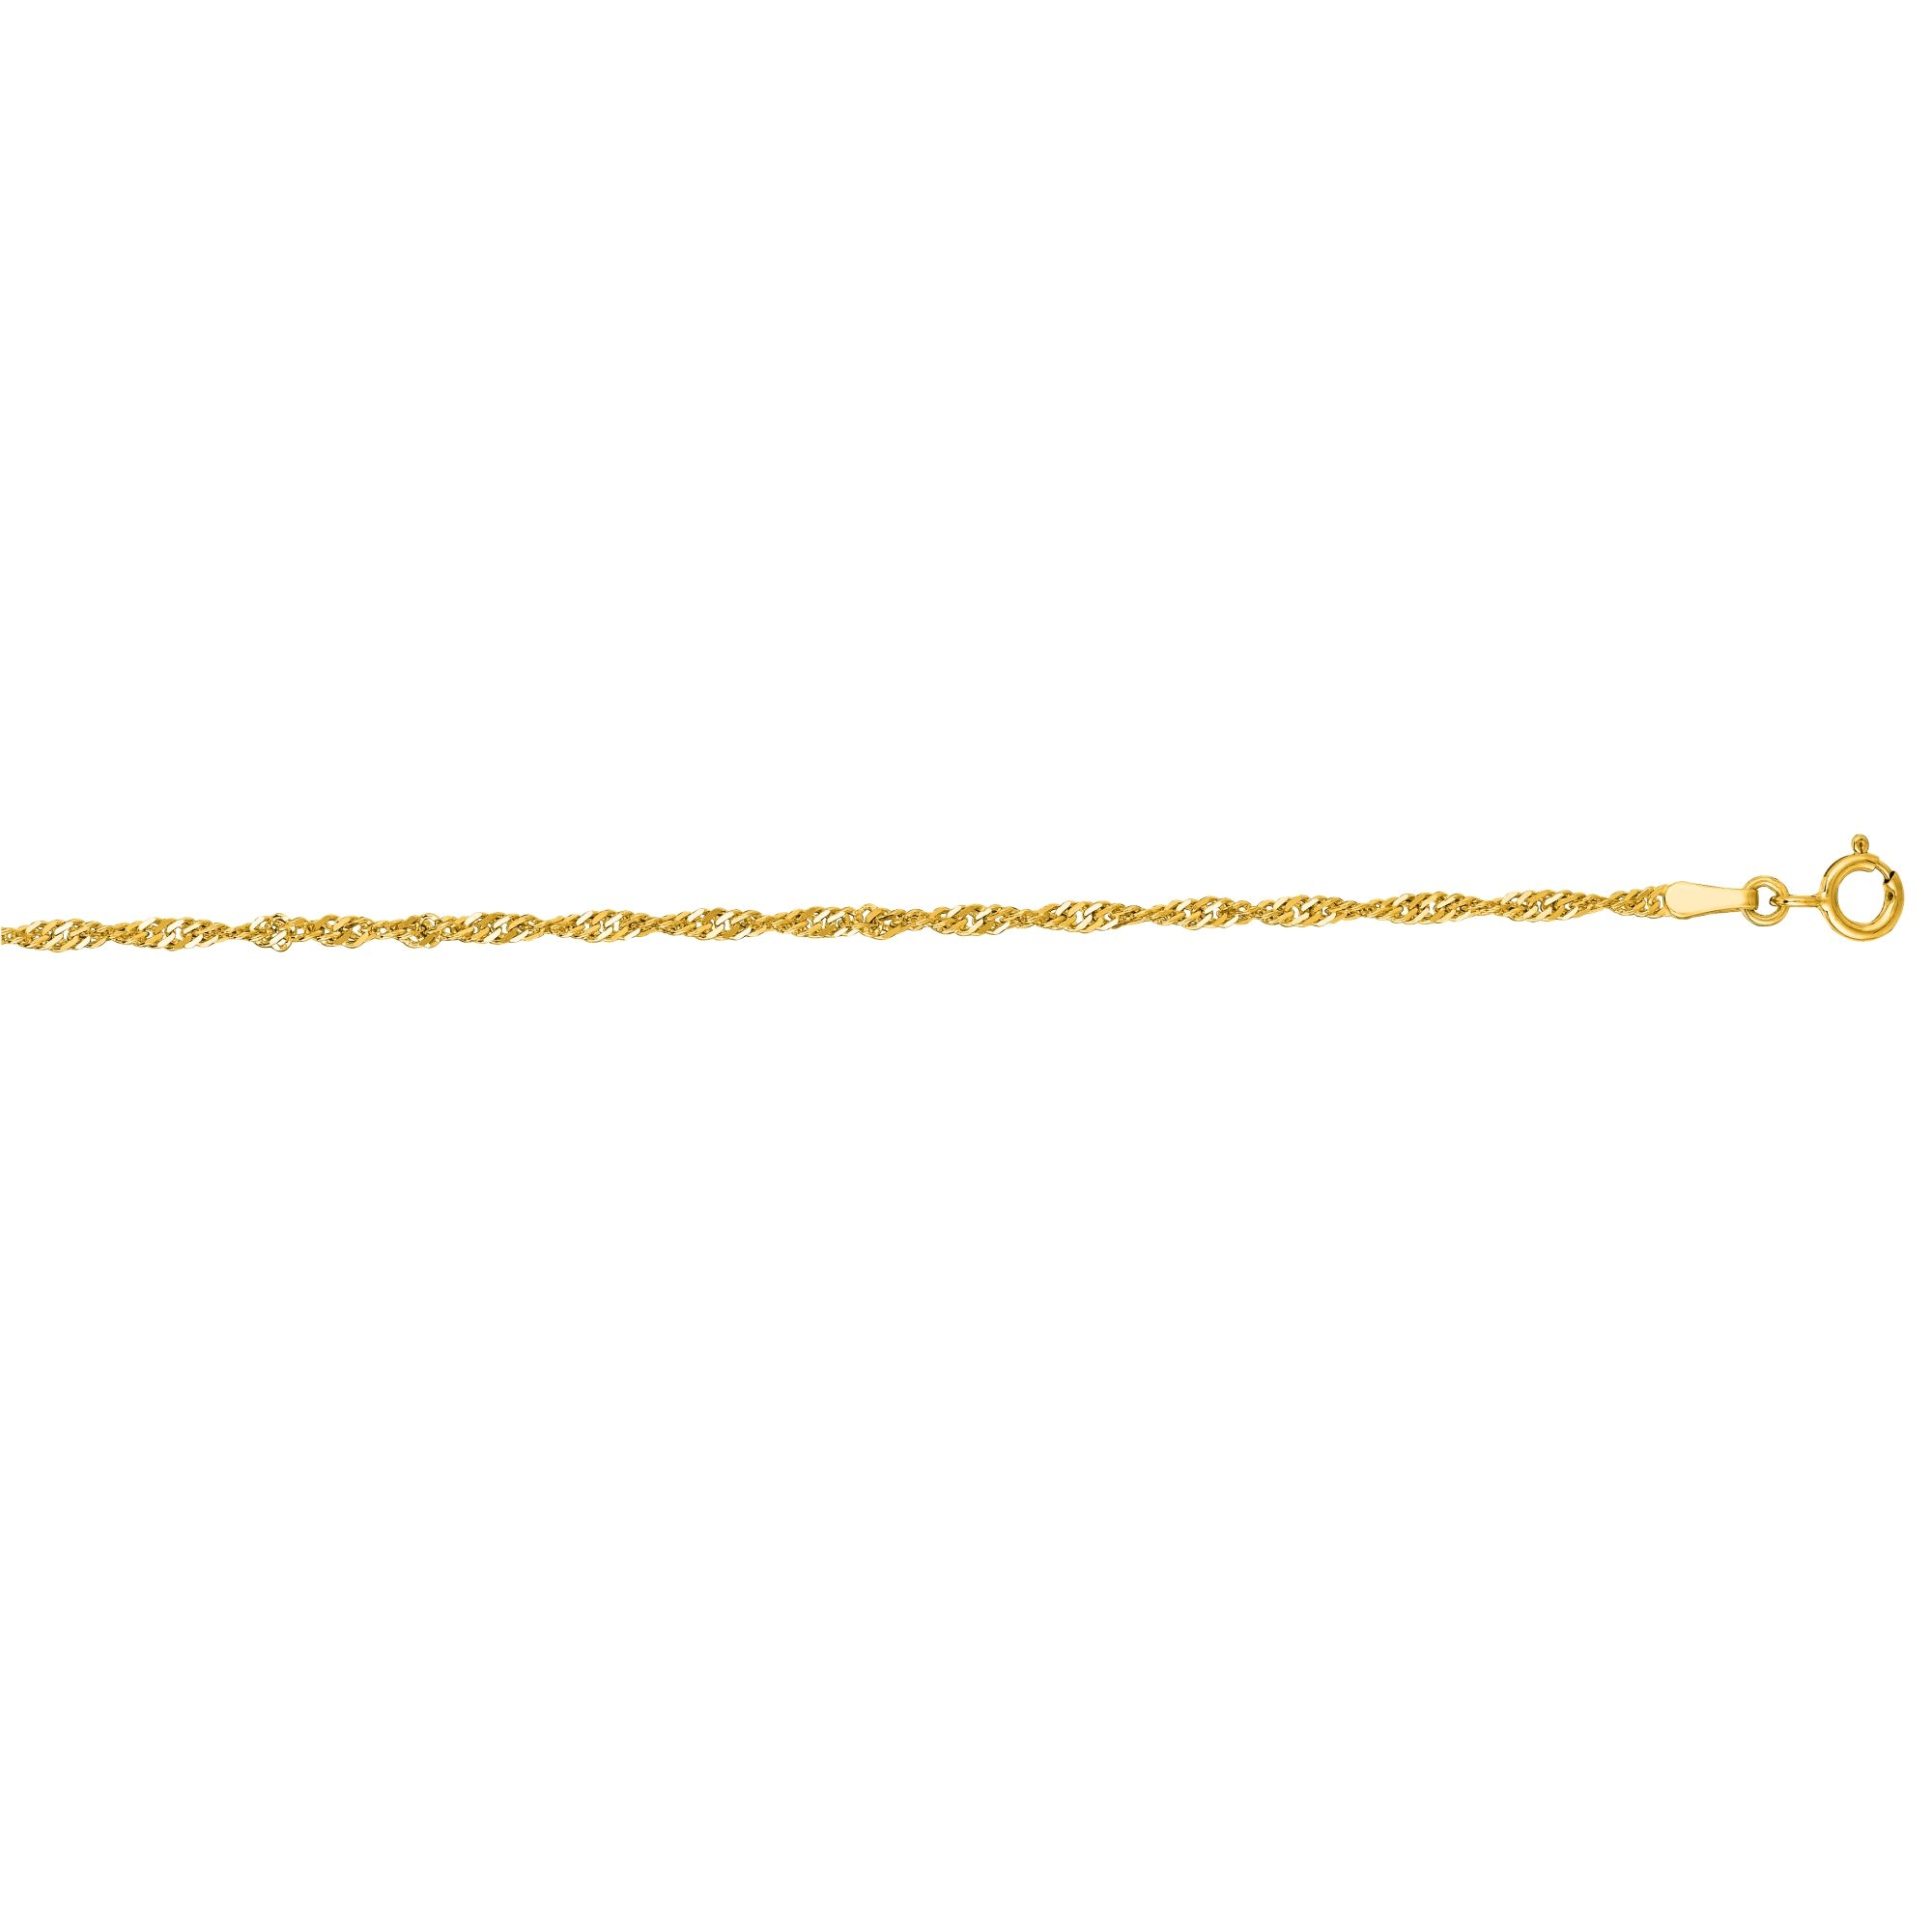 14kt 20 inches Yellow Gold 1.7mm Diamond Cut Singapore Chain with Spring Ring Clasp